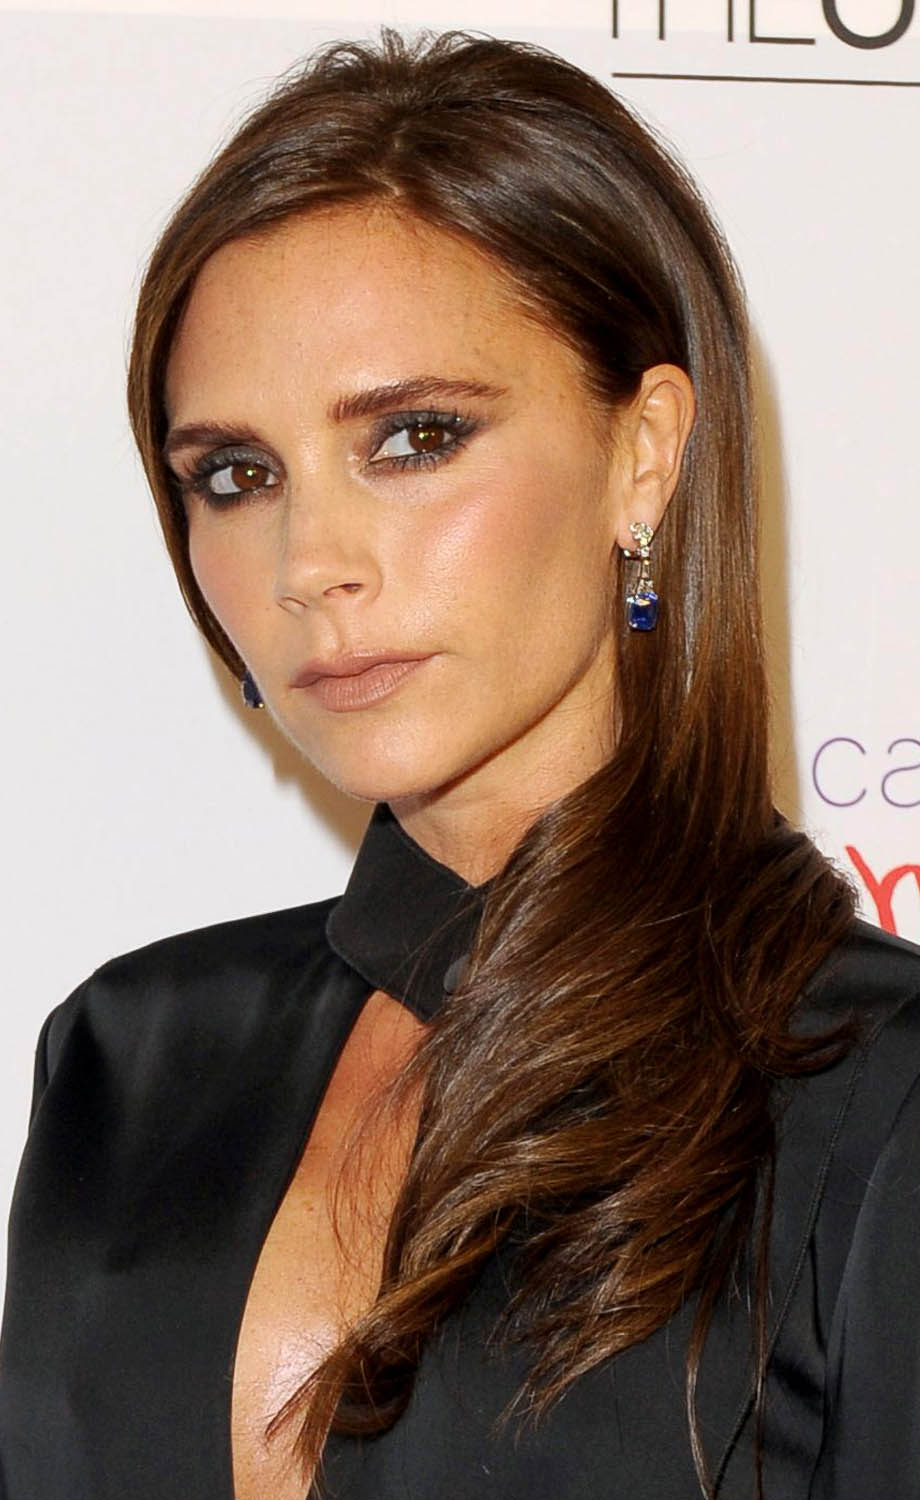 hair-makeup-victoriabeckham-brun-long-down-sidepart-eyeliner.jpg